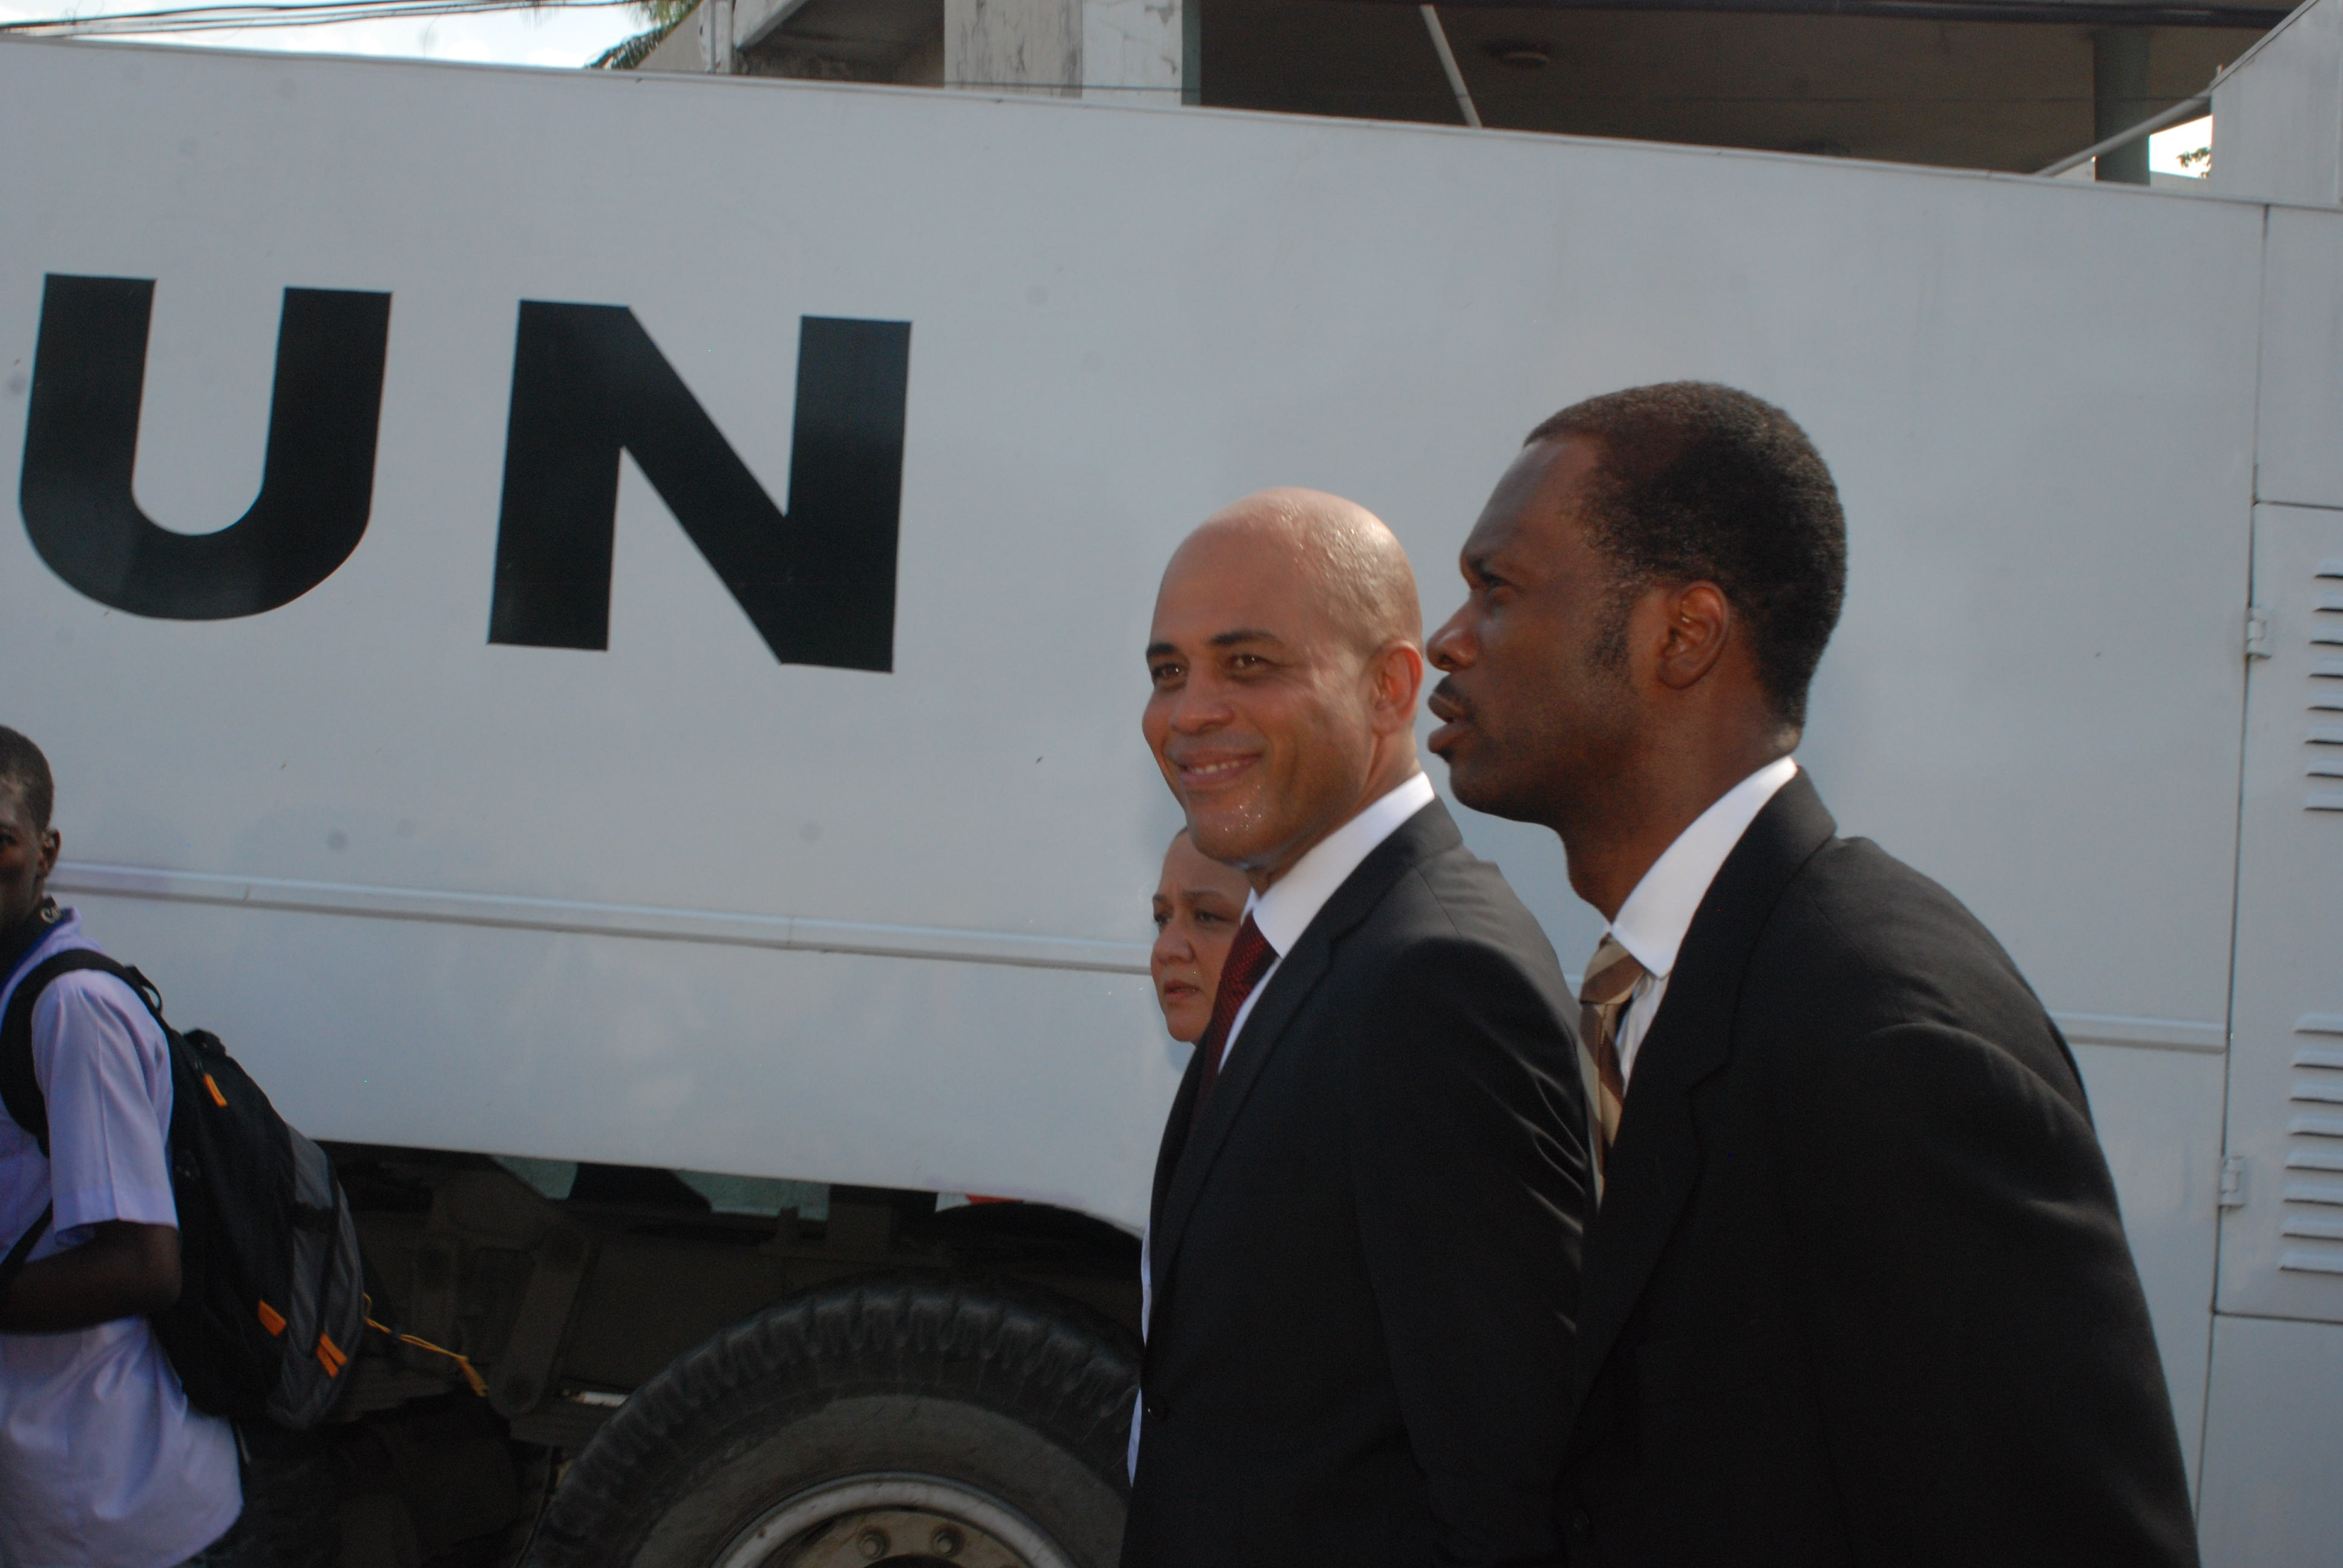 Martelly - photo by Wadner Pierre